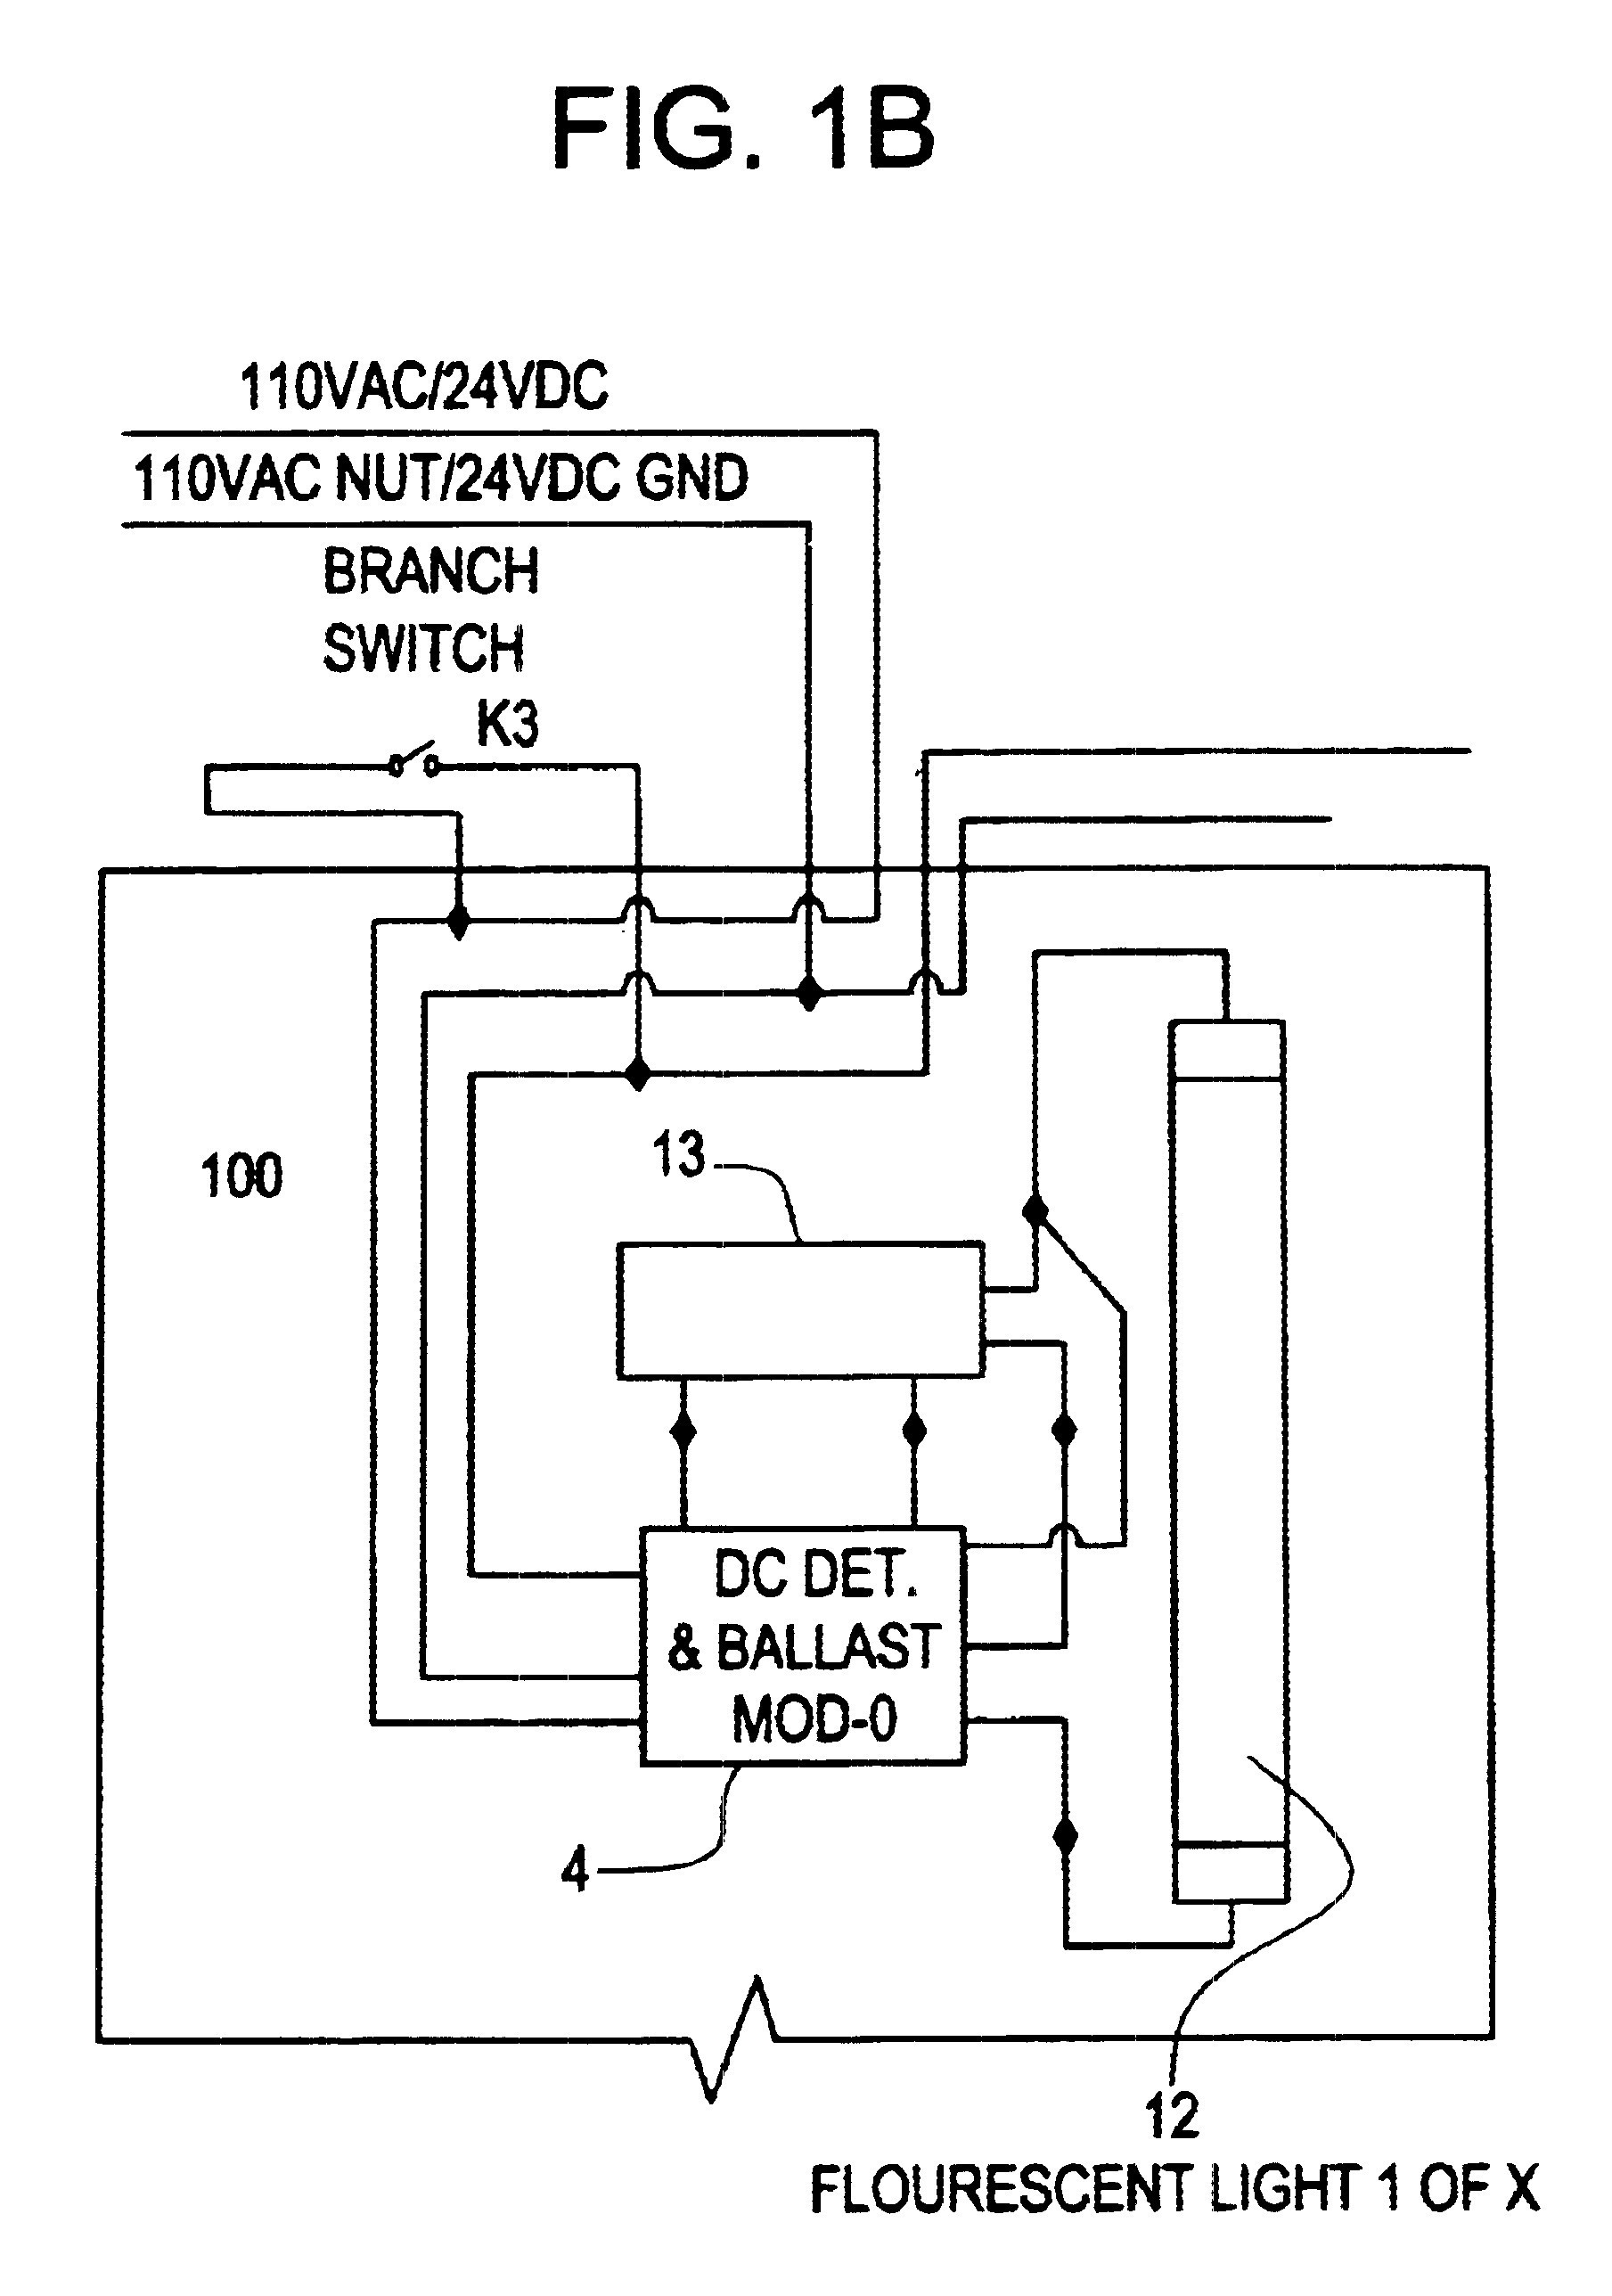 Philips Advance Ballast Wiring Diagram Download Manual Guide